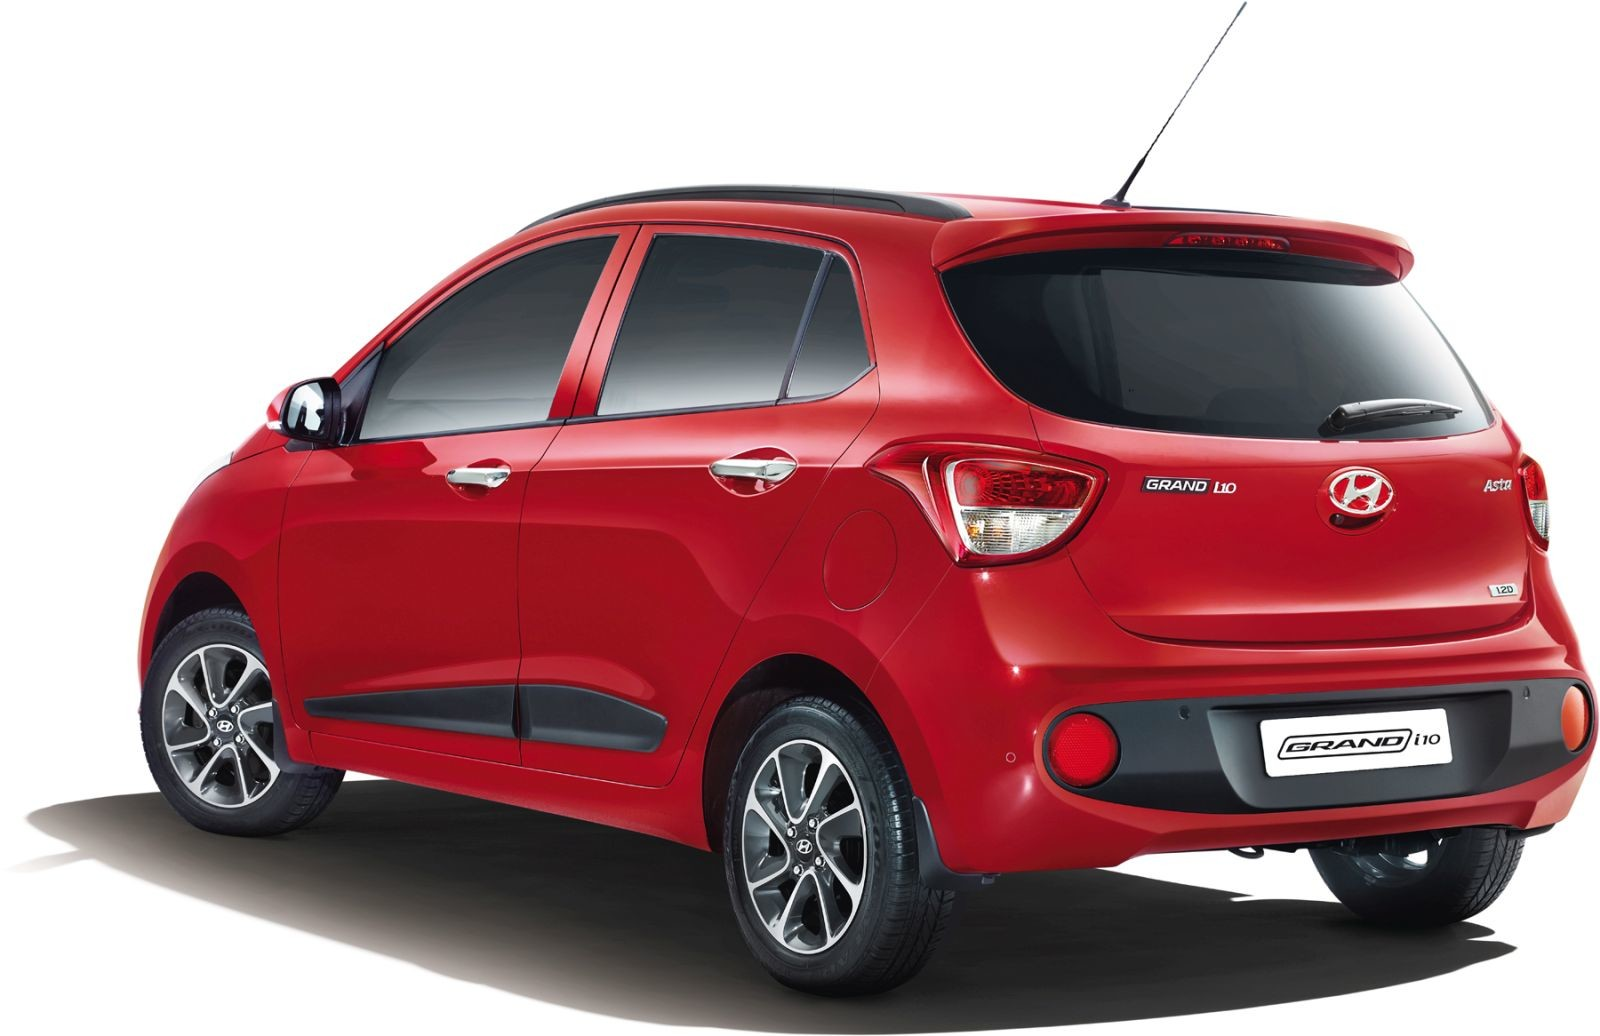 2017 hyundai grand i10 facelift launched in india prices start at inr lakh ex delhi. Black Bedroom Furniture Sets. Home Design Ideas